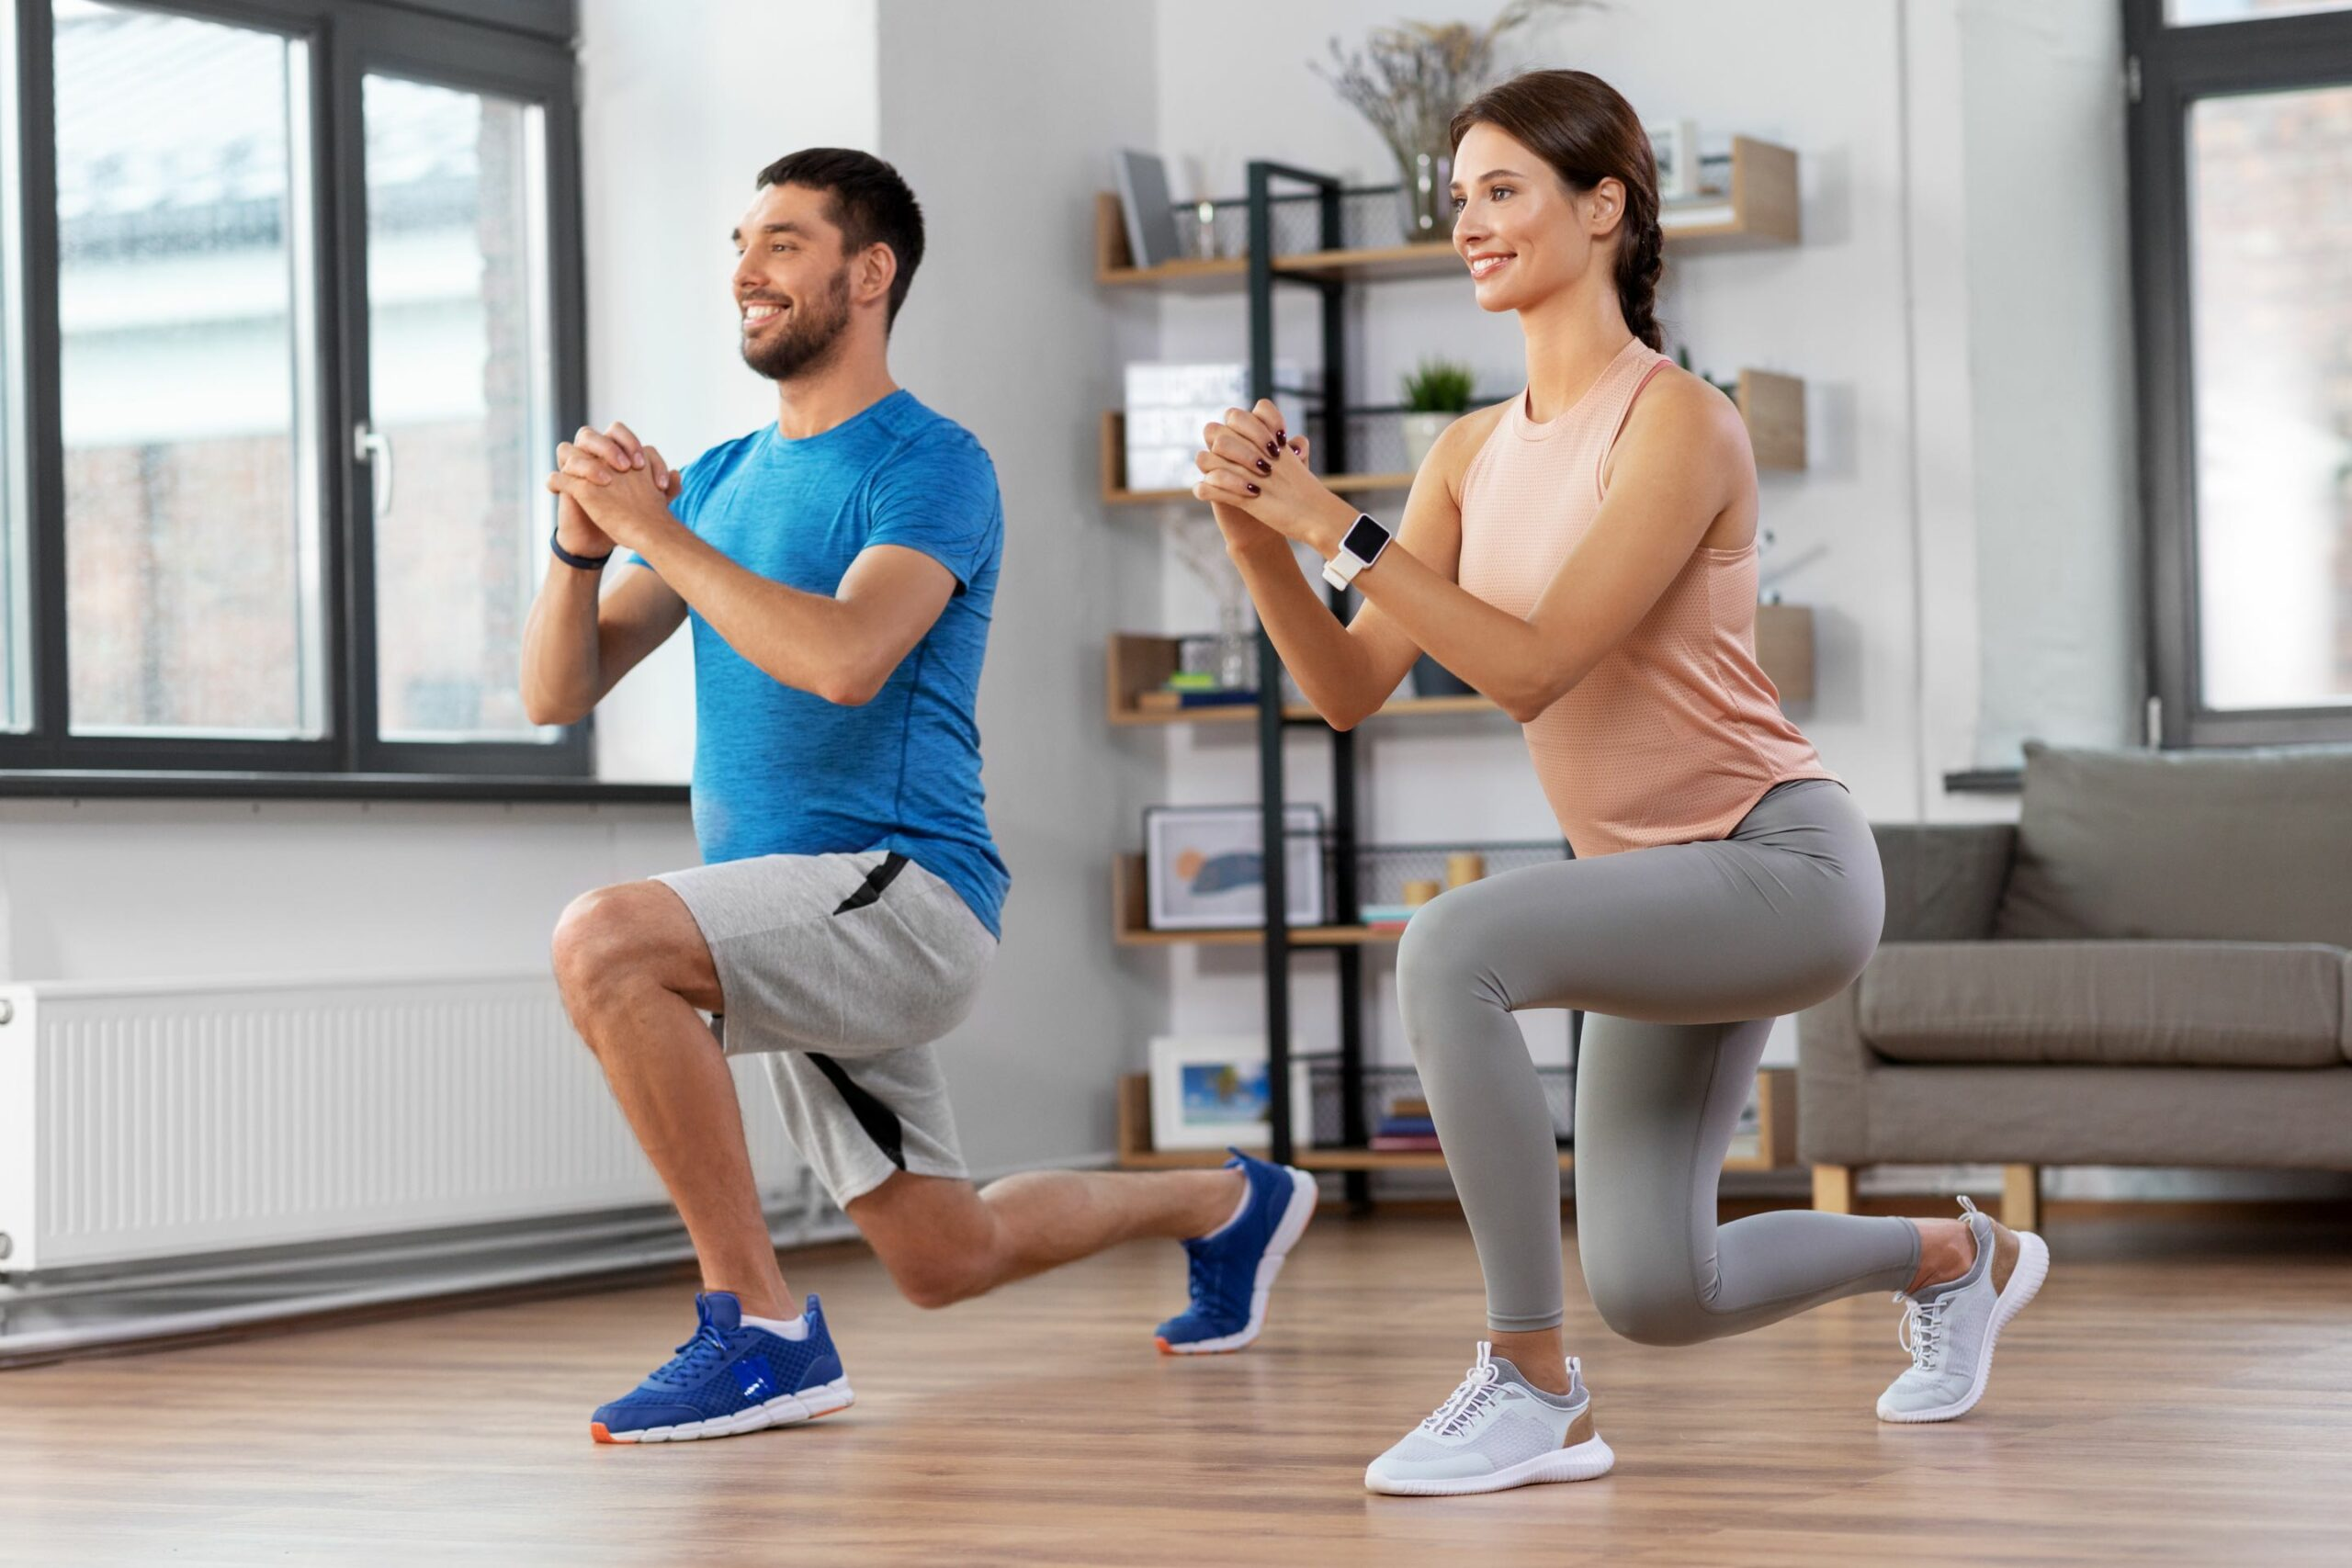 Leg strength training with these 8 exercises